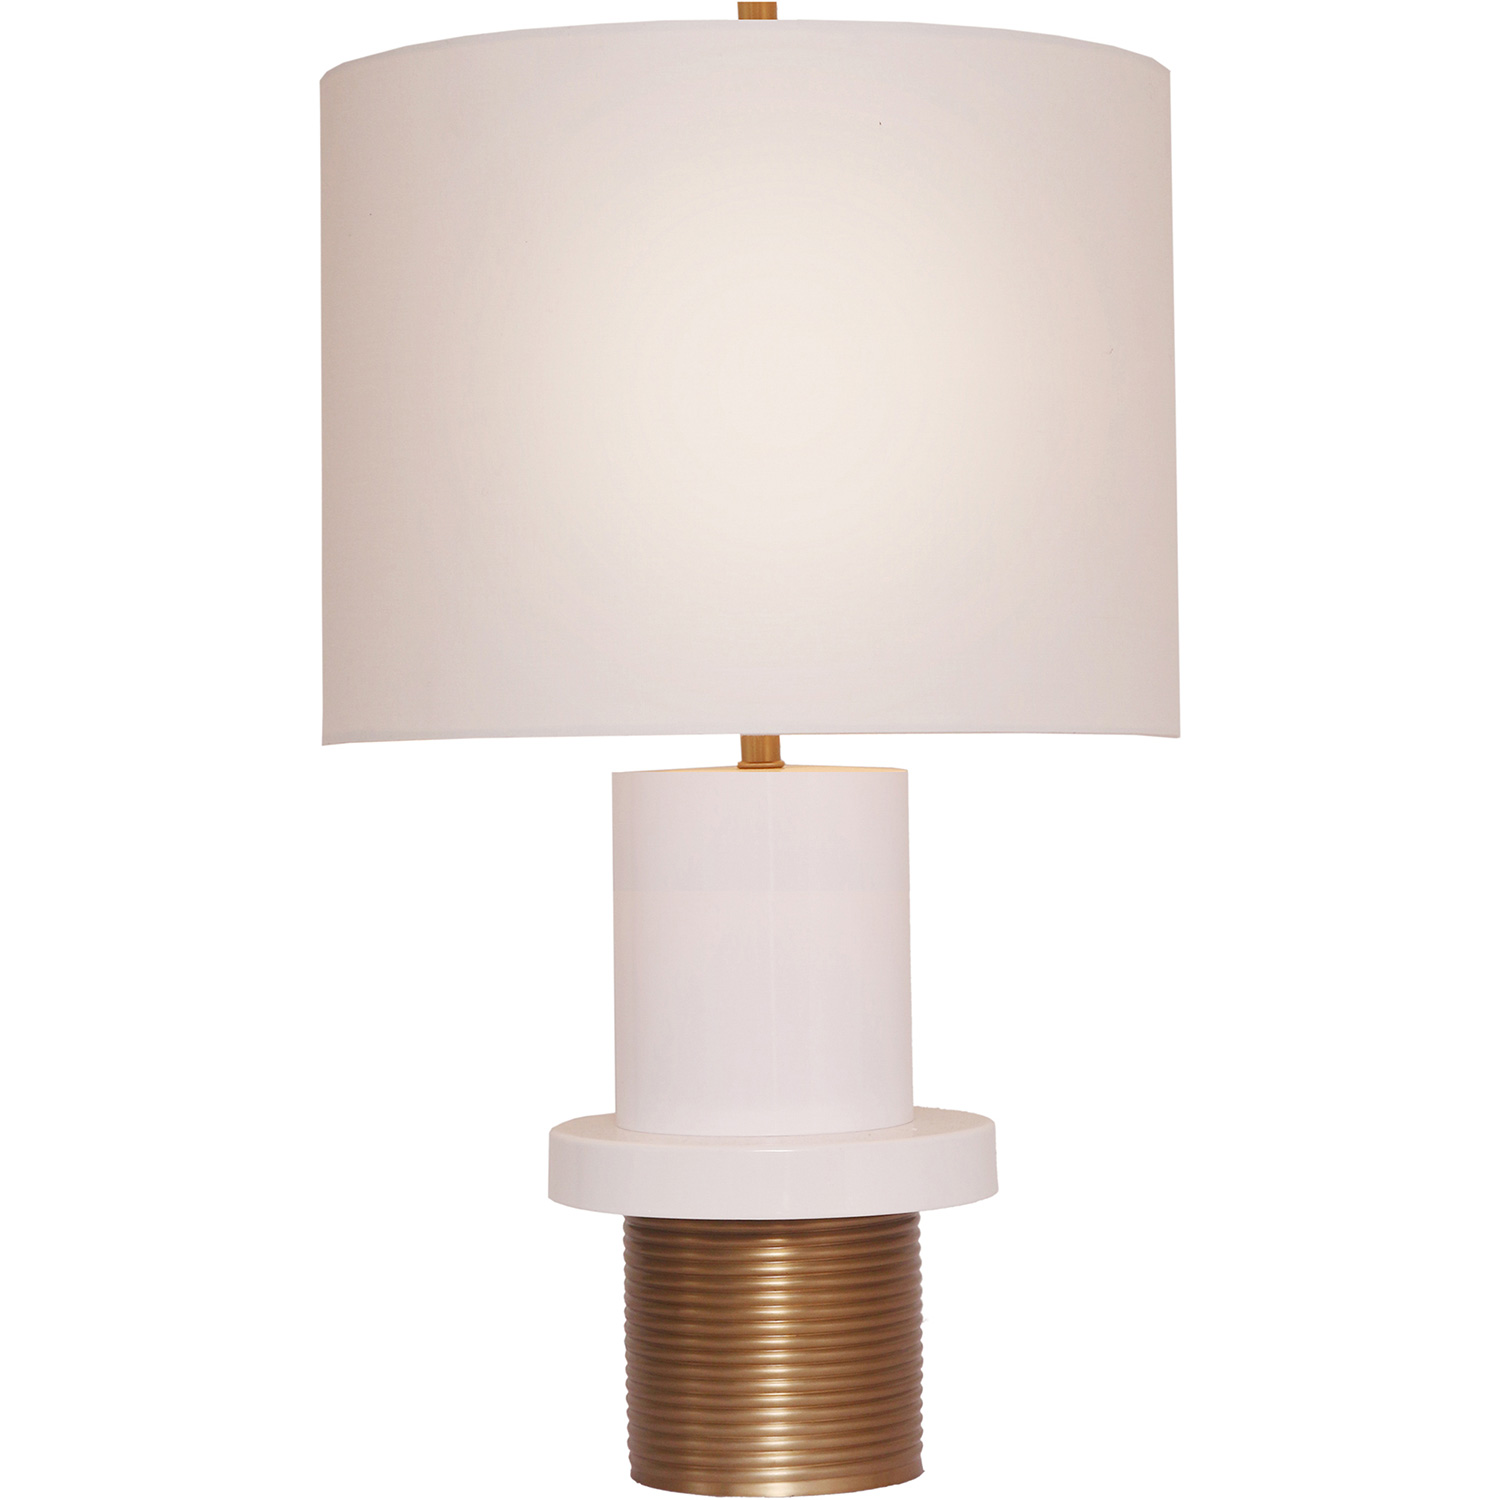 Ren-Wil Monique Table Lamp - White/Gold